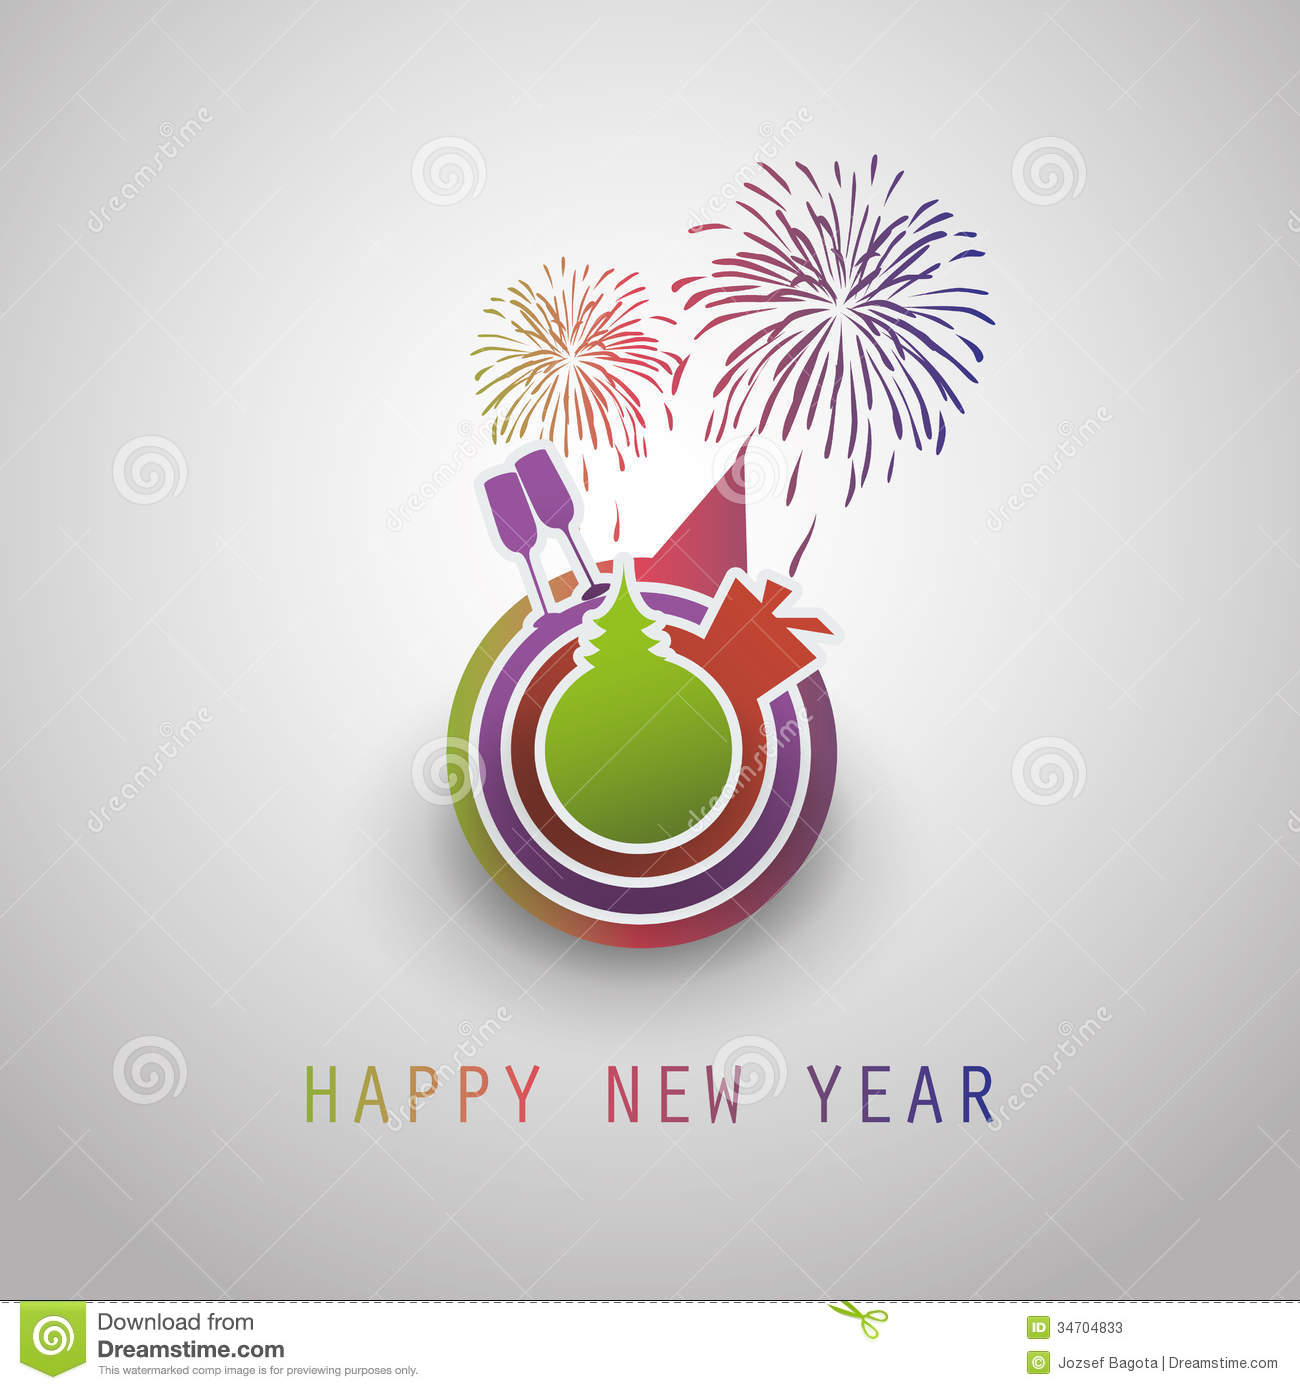 Business happy new year 2014 greeting cards m4hsunfo